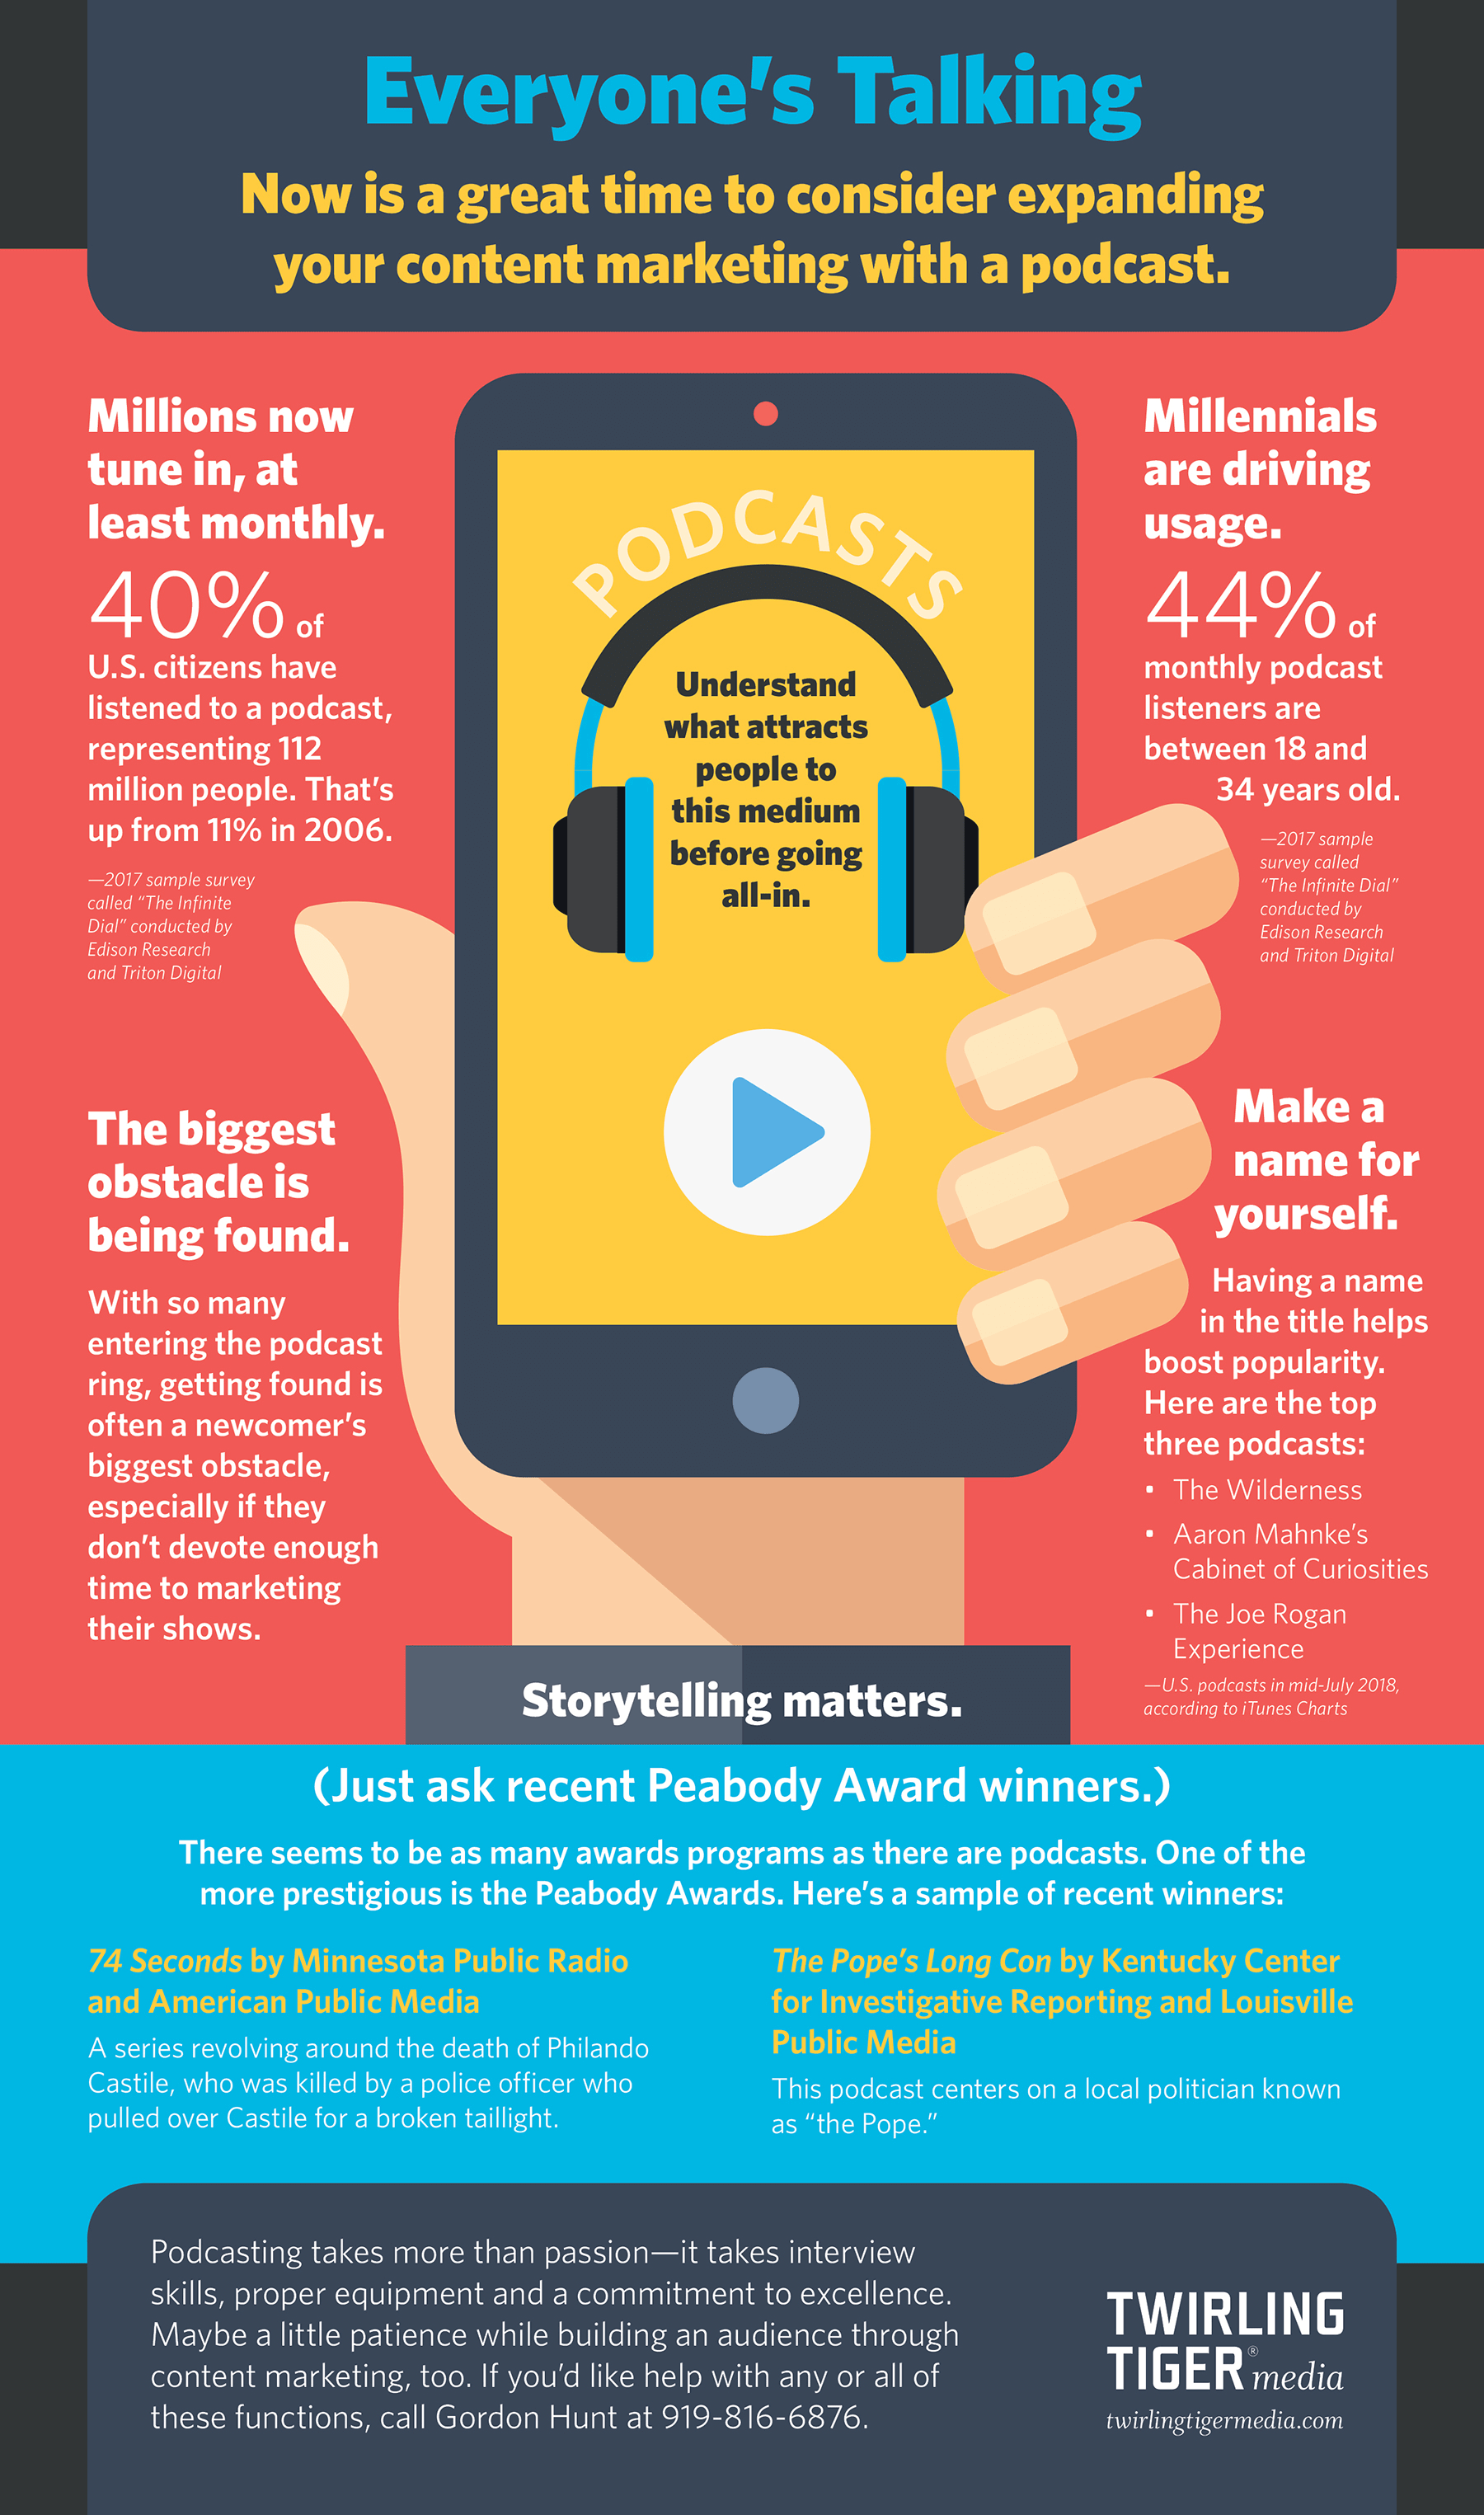 Expand Your Content Marketing with a Podcast